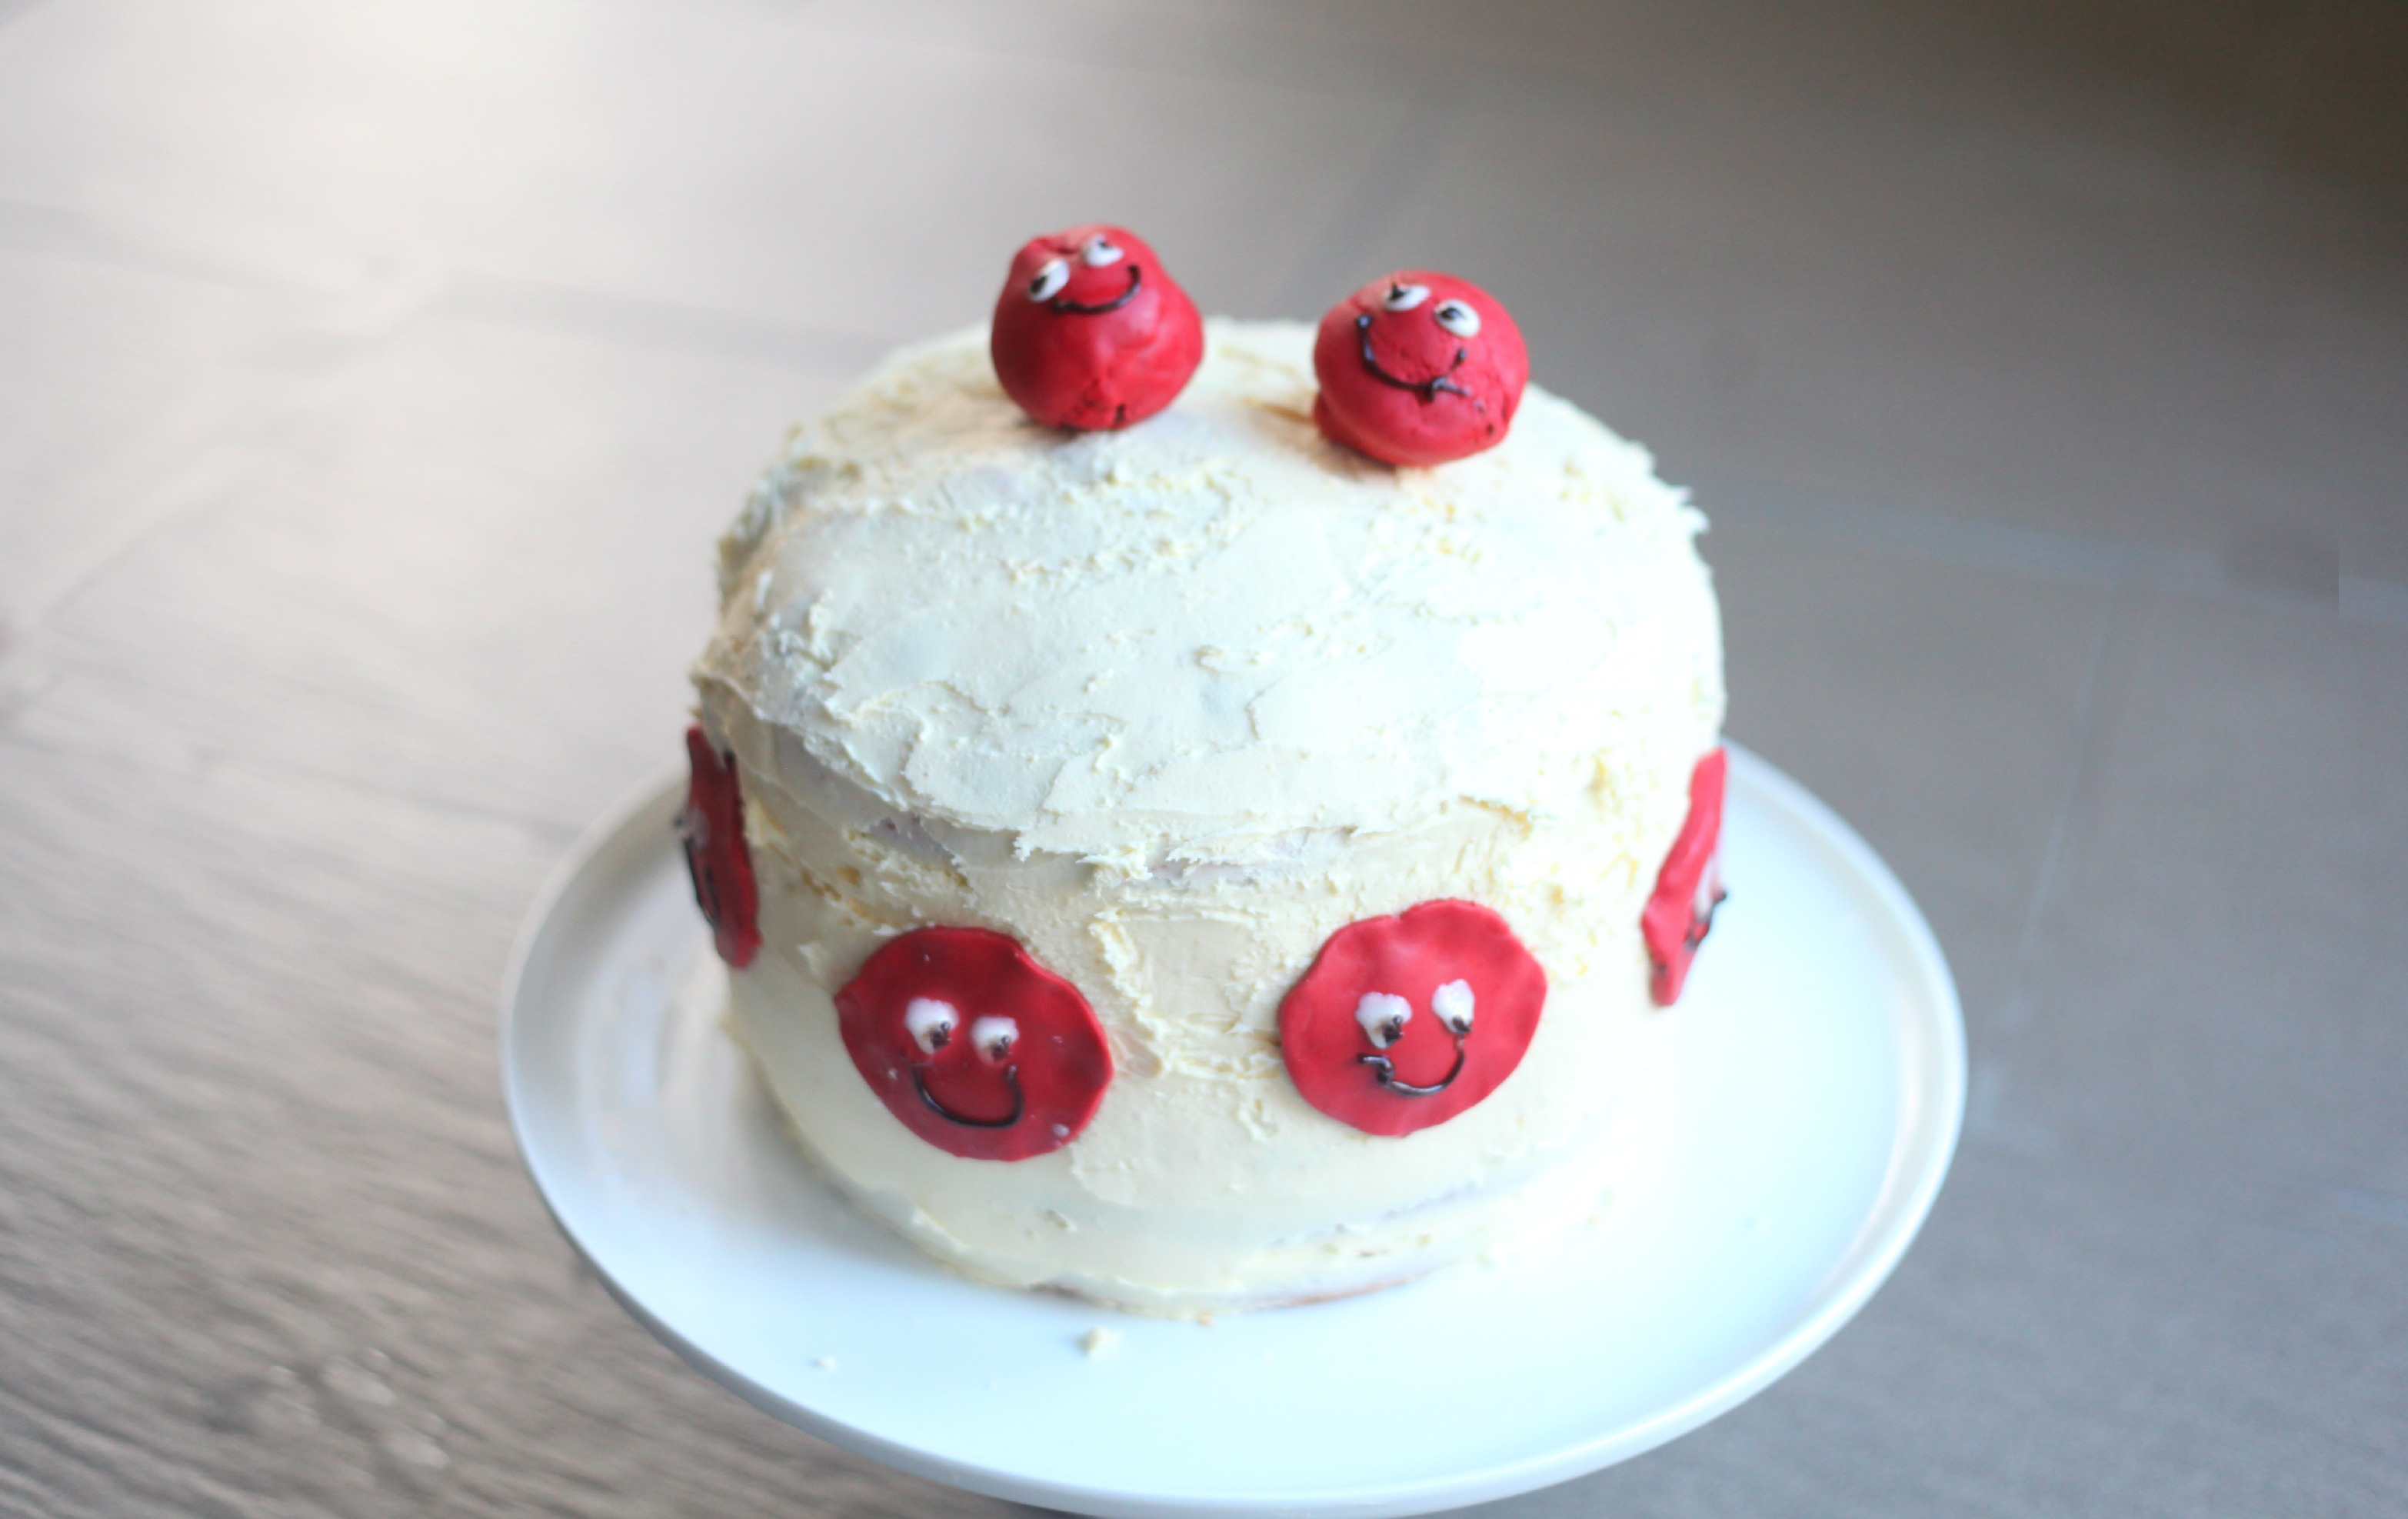 Red Nose Cake Images : Red Noses Day Cake #raisesomedough - mummy mishaps